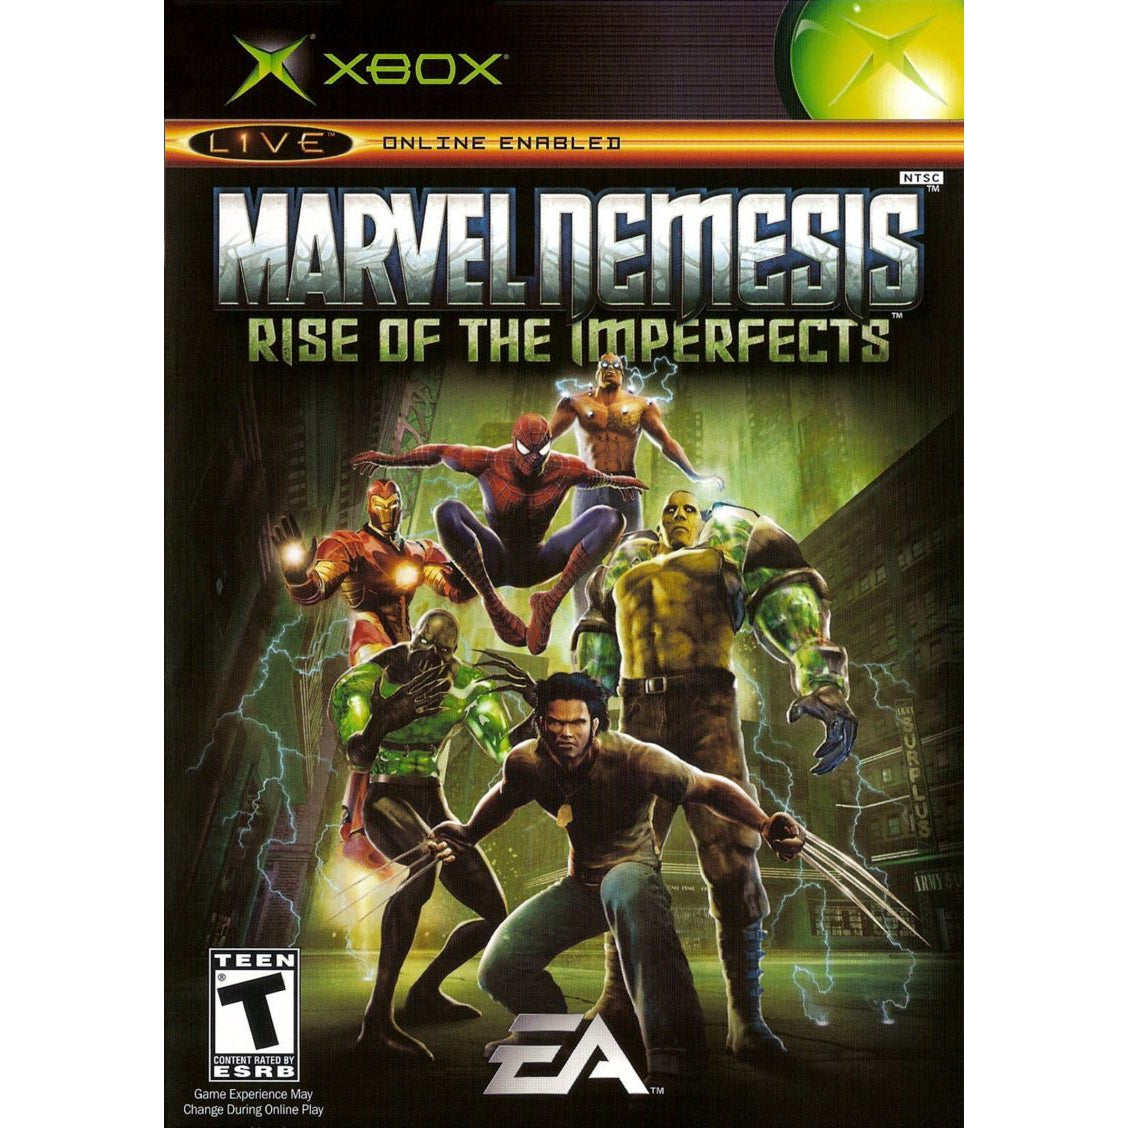 Marvel Nemesis: Rise of the Imperfects - Microsoft Xbox Game Complete - YourGamingShop.com - Buy, Sell, Trade Video Games Online. 120 Day Warranty. Satisfaction Guaranteed.